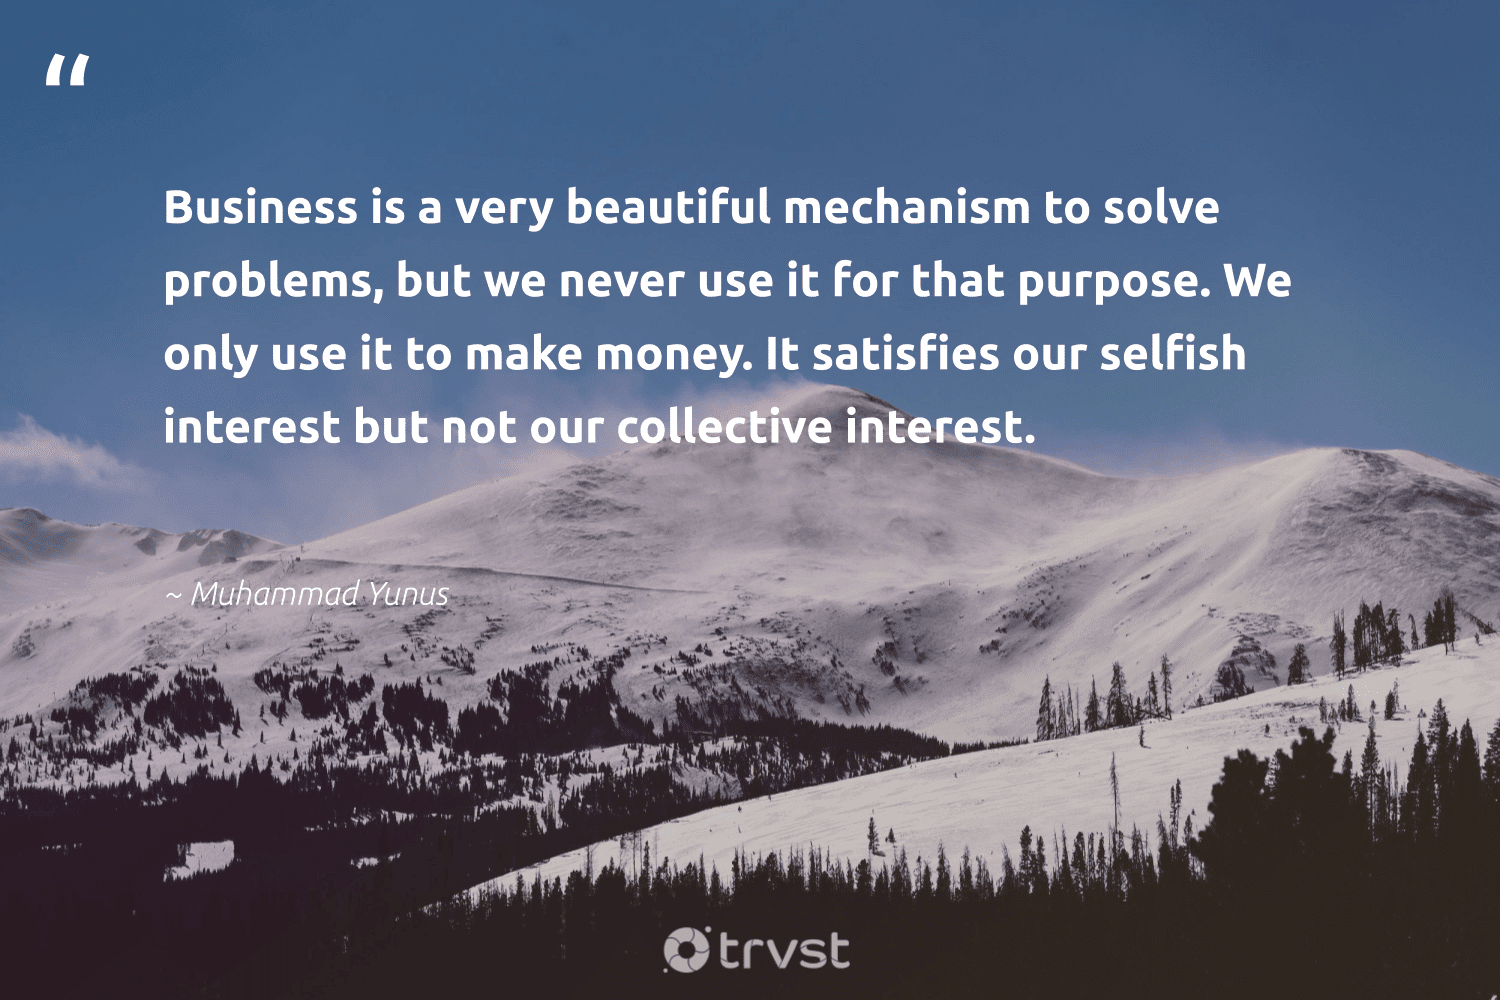 """""""Business is a very beautiful mechanism to solve problems, but we never use it for that purpose. We only use it to make money. It satisfies our selfish interest but not our collective interest.""""  - Muhammad Yunus #trvst #quotes #purpose #findpurpose #betterplanet #mindset #dosomething #findingpupose #dogood #changemakers #thinkgreen #purposedriven"""